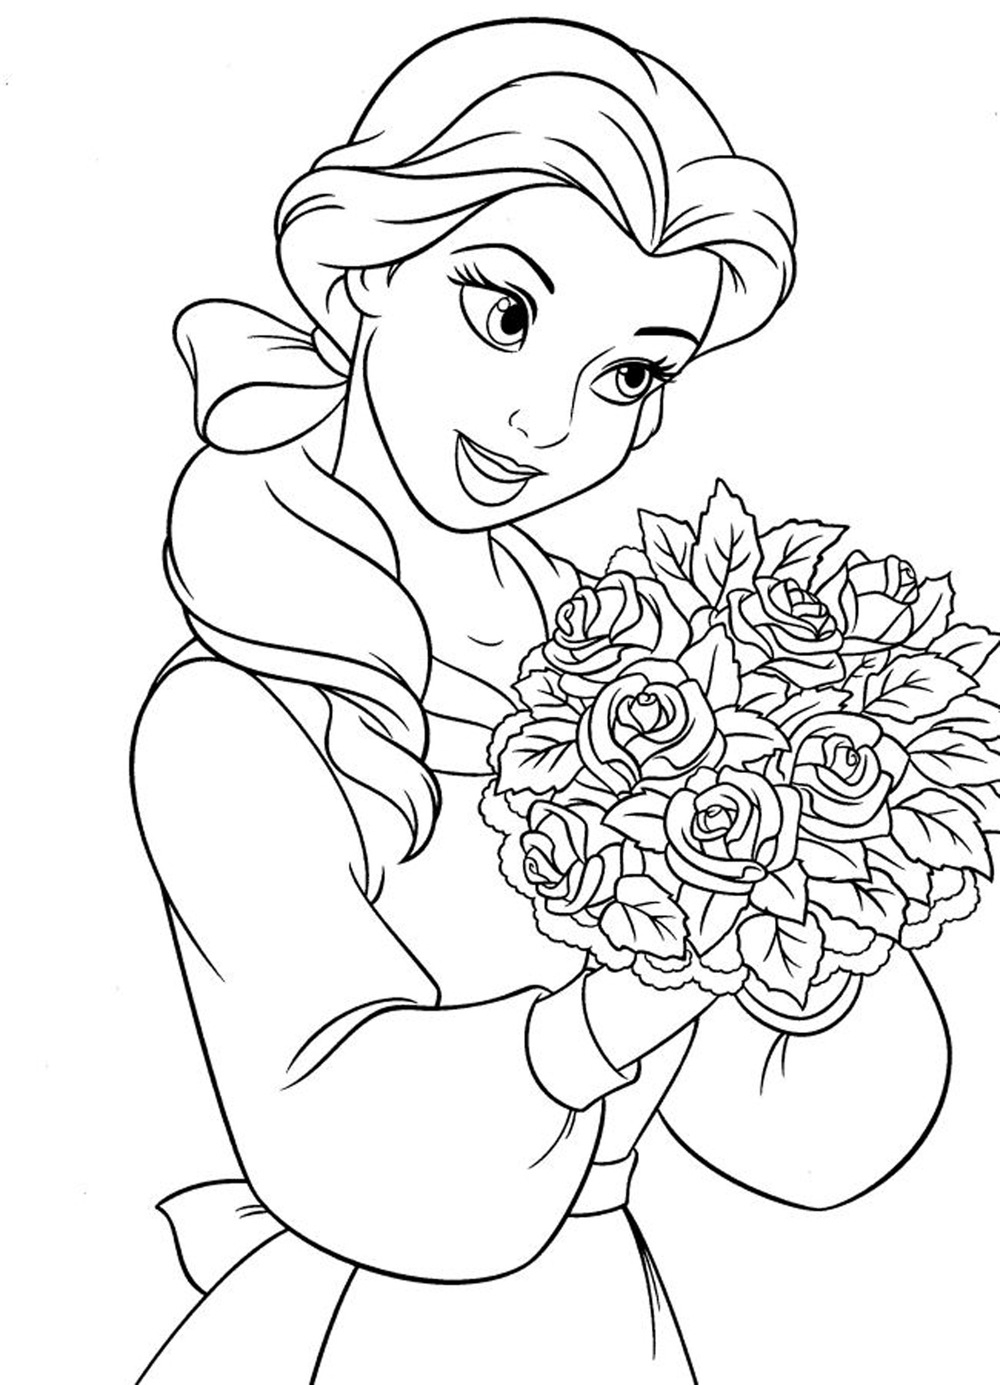 disney coloring pages - q=disney prinzessinnen